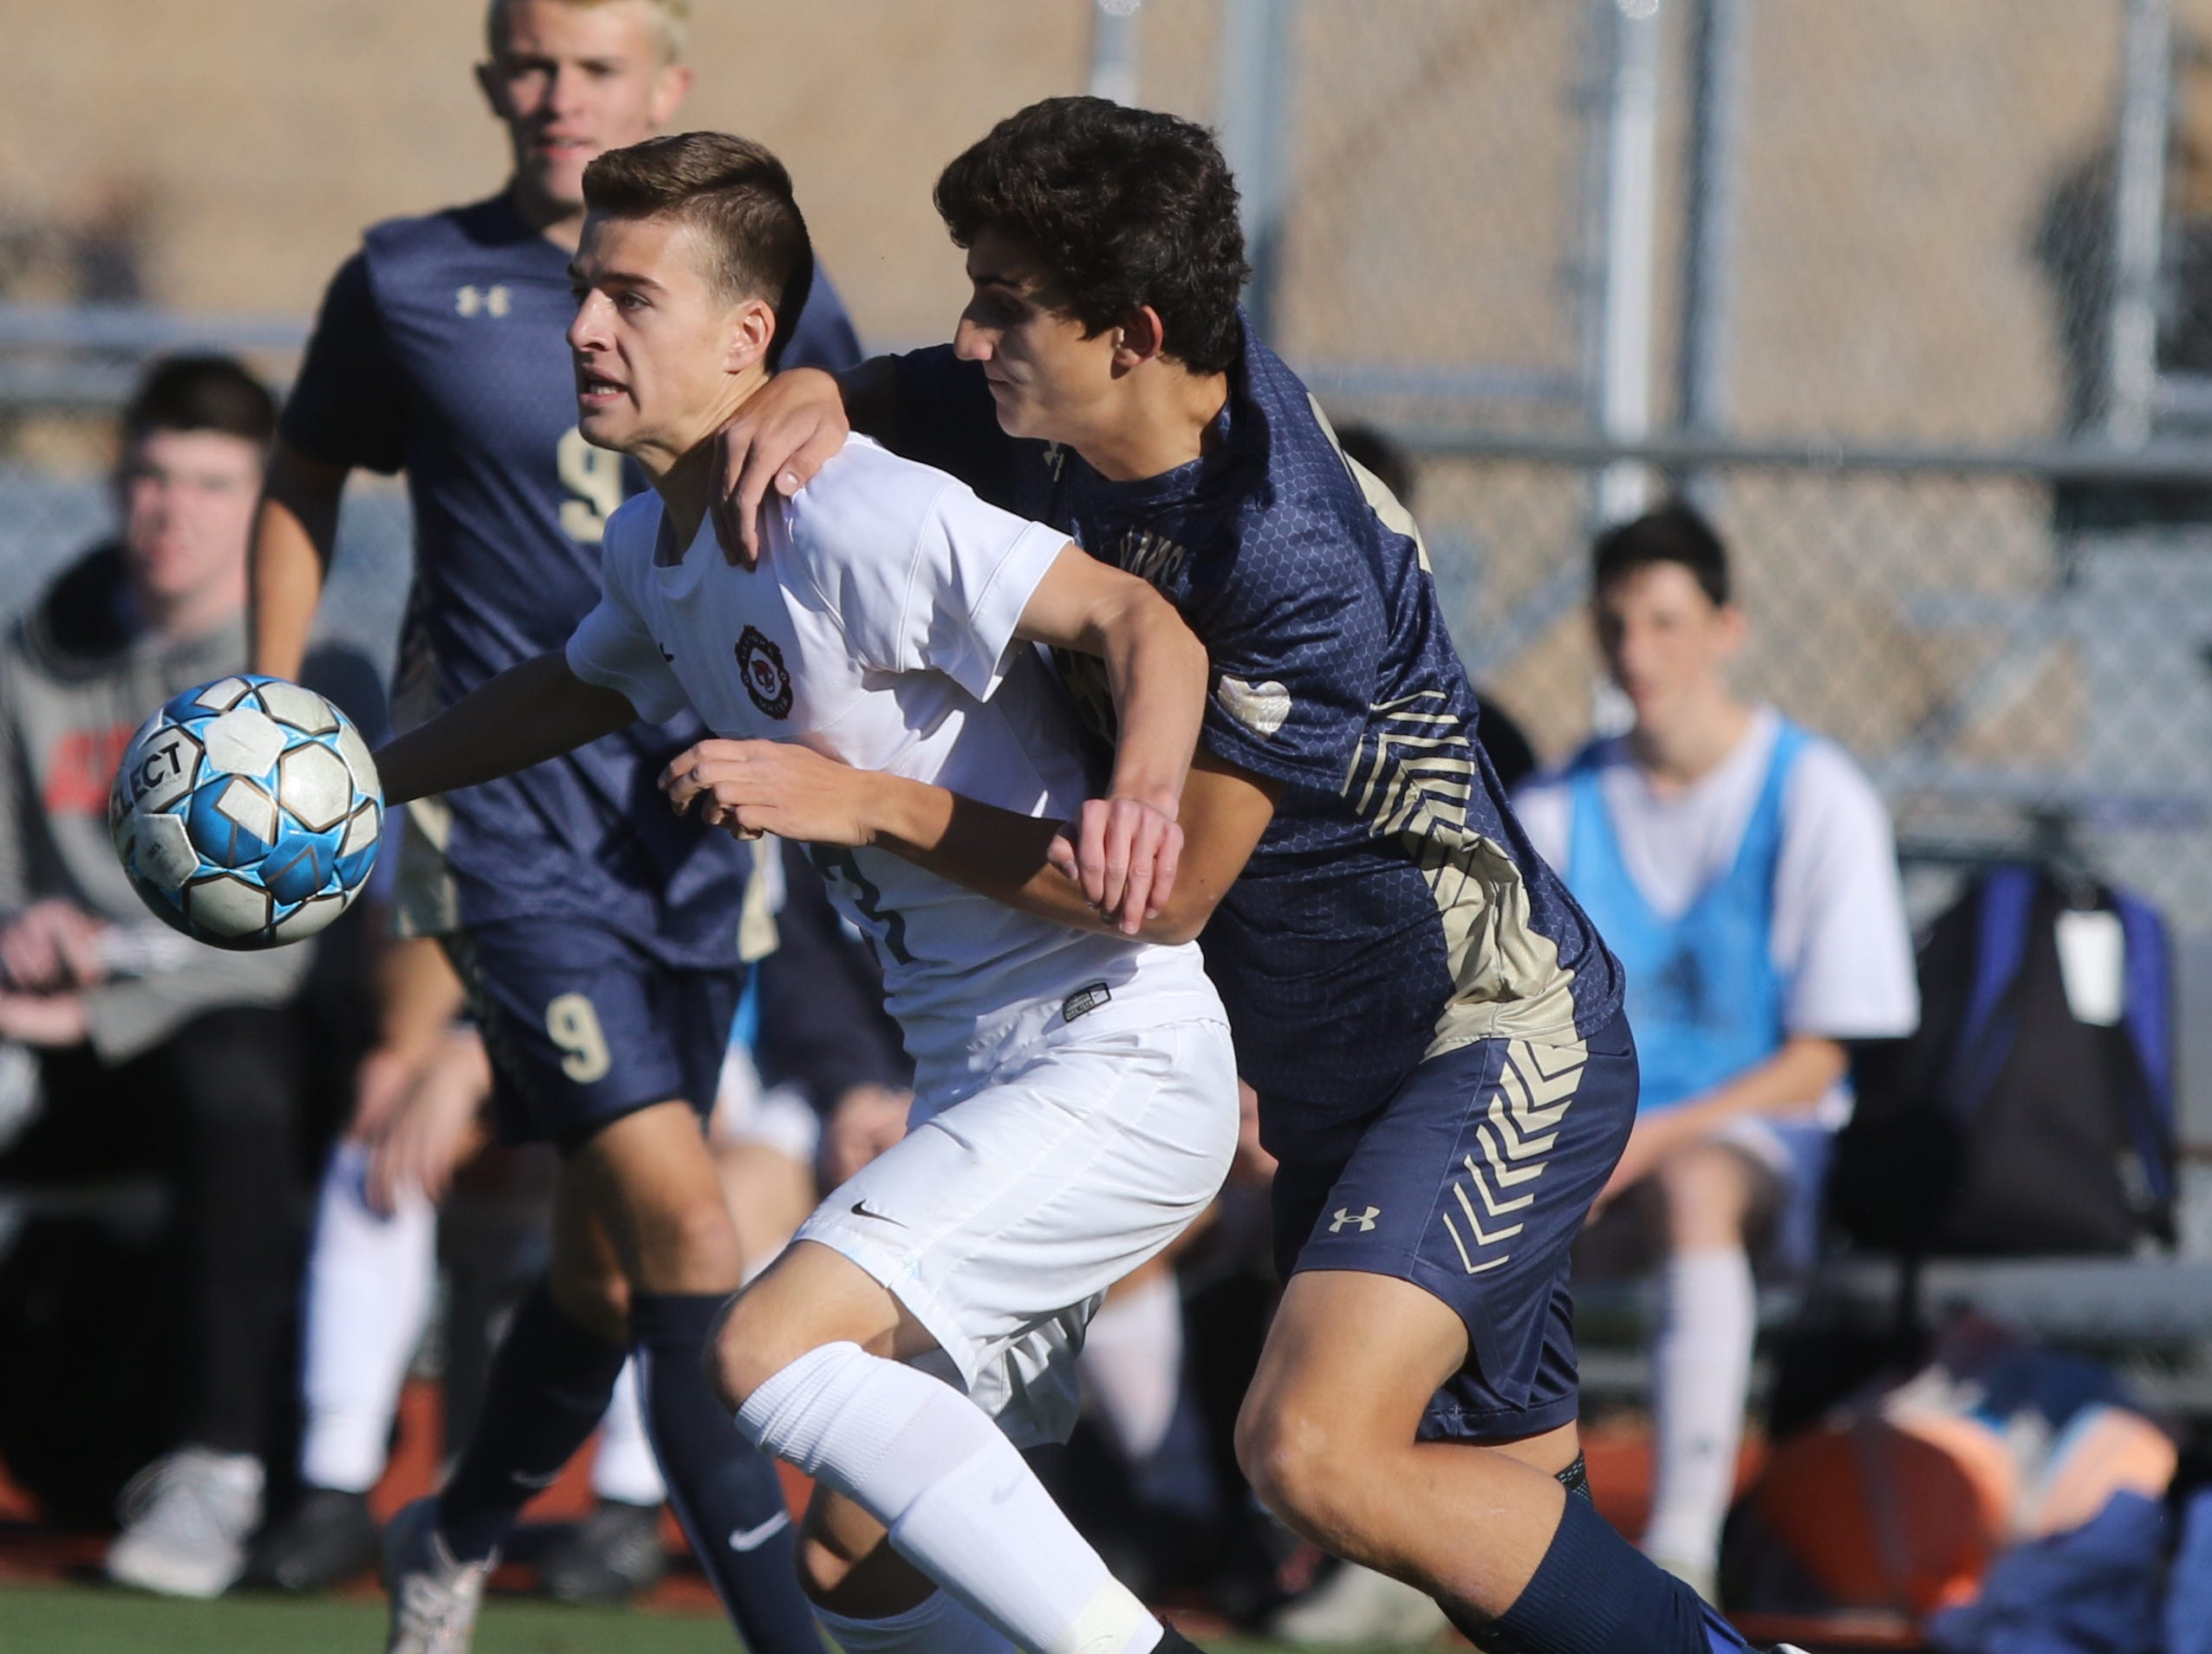 Conor Daly of Glen Rock takes the ball in front of Lucas Souza of Ramsey in the first half.